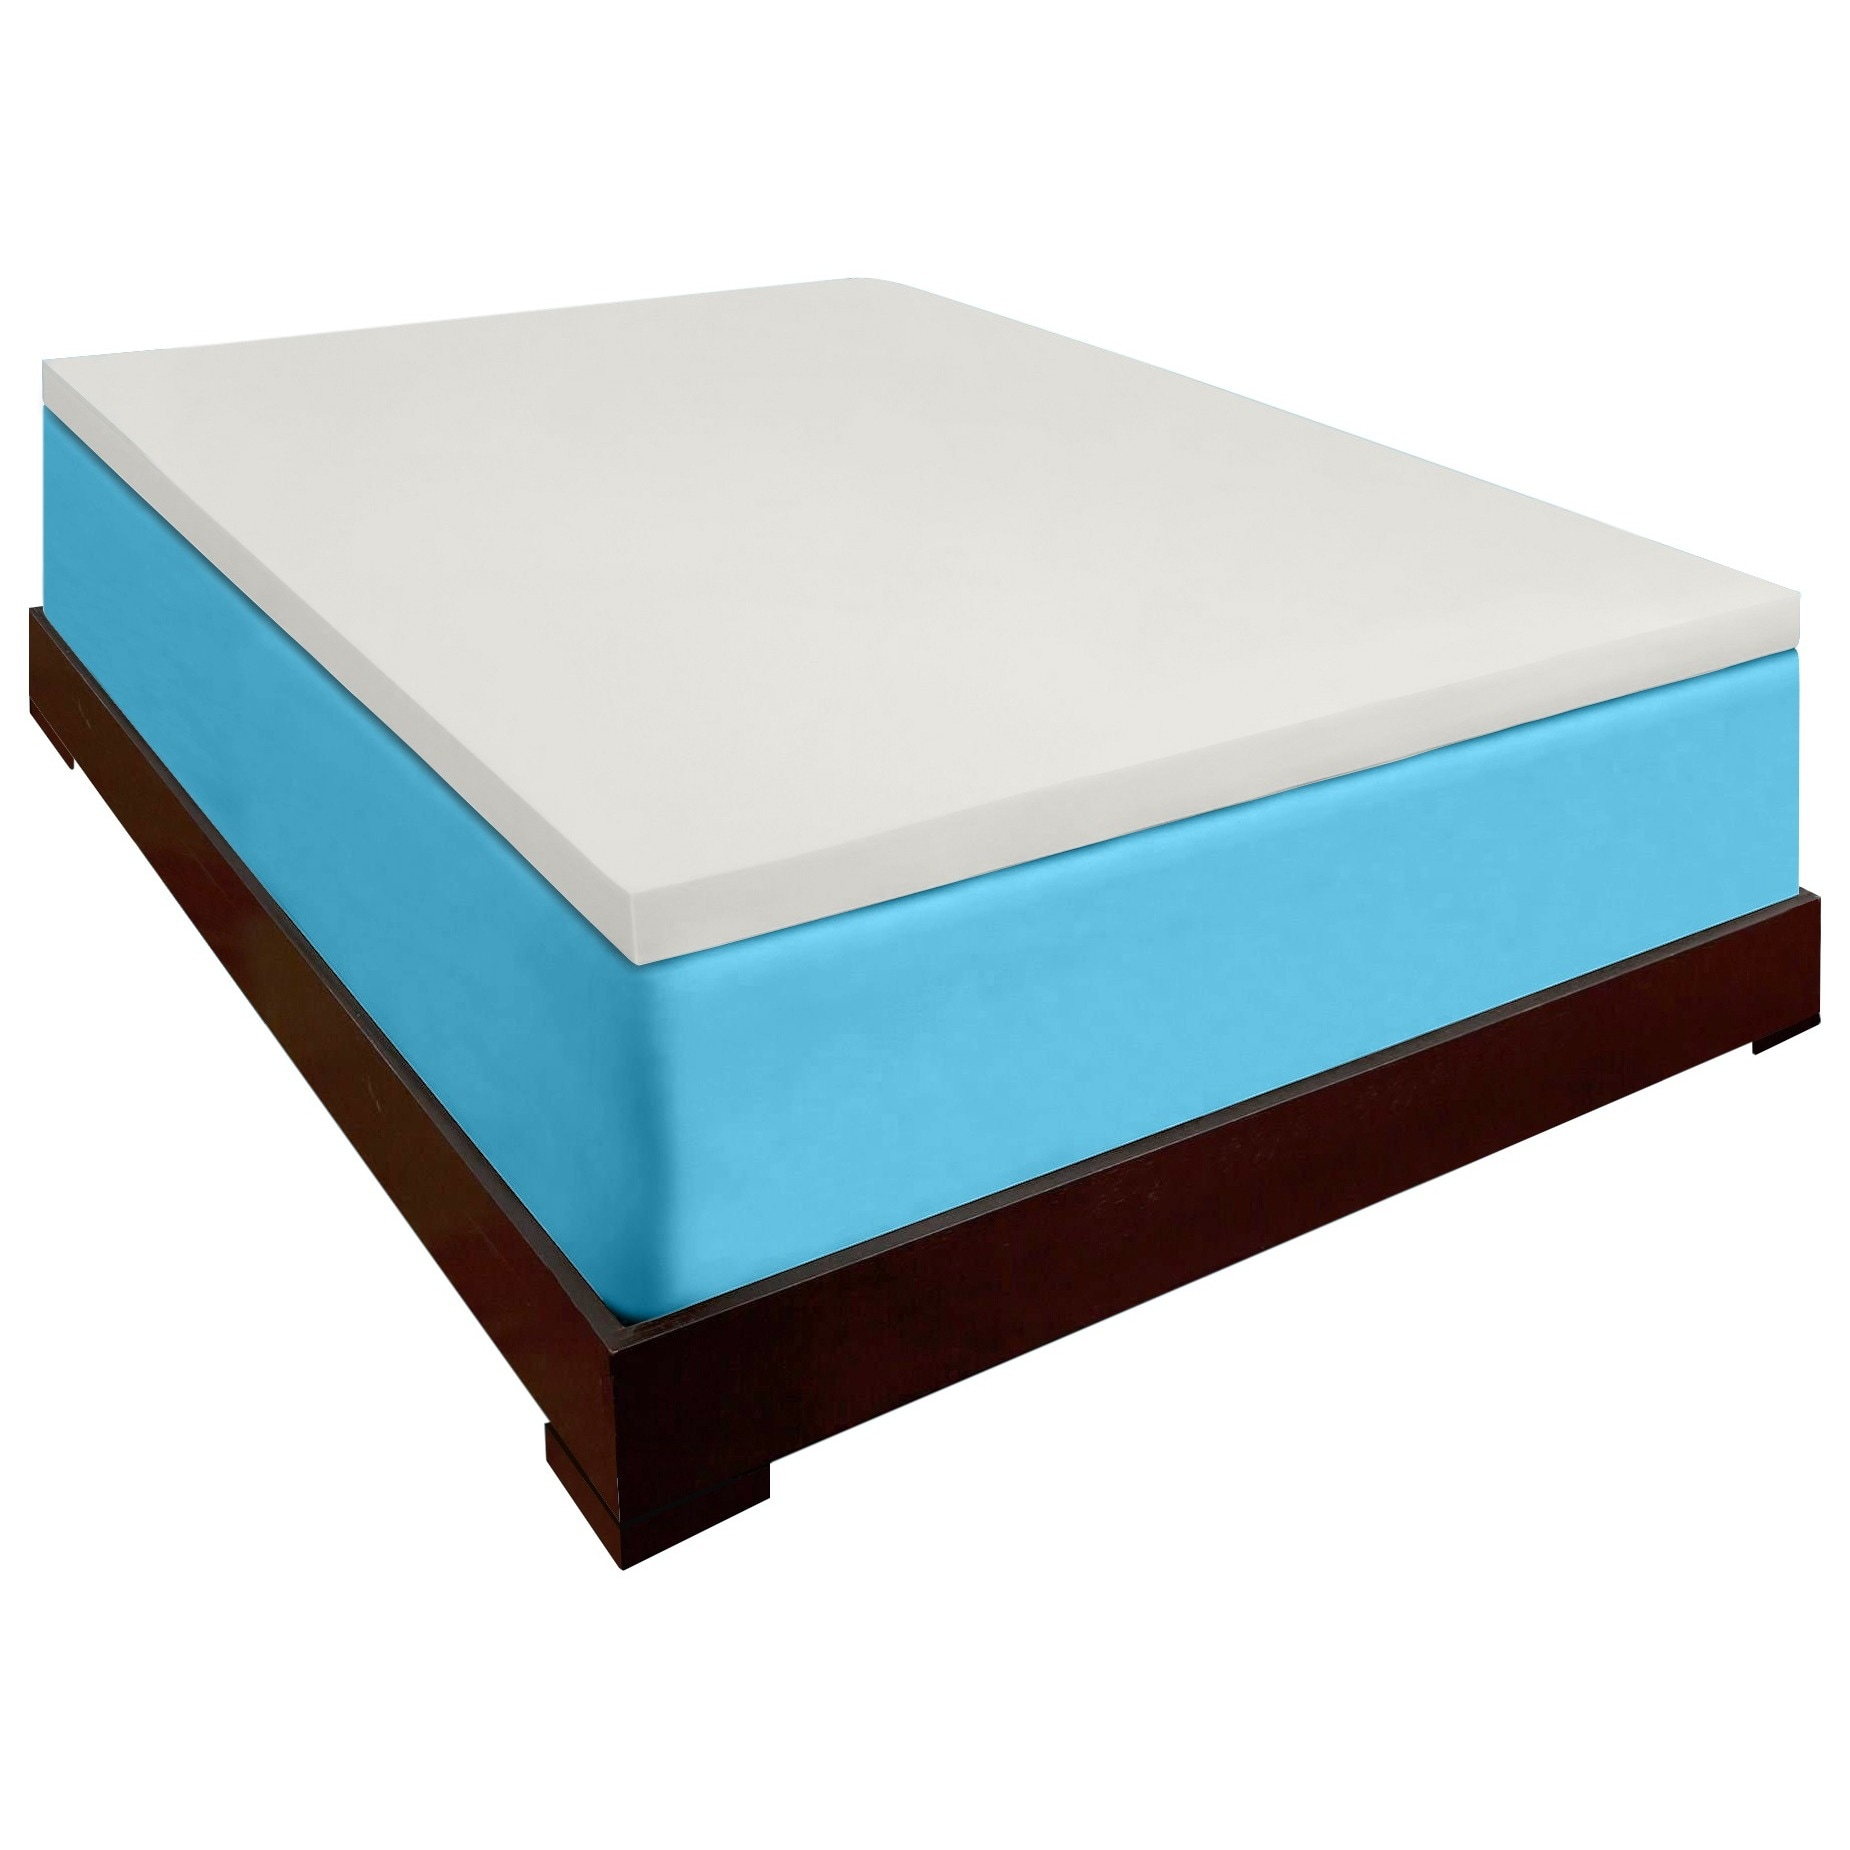 DreamDNA 4-inch 4-pound Density Memory Foam Mattress Topp...